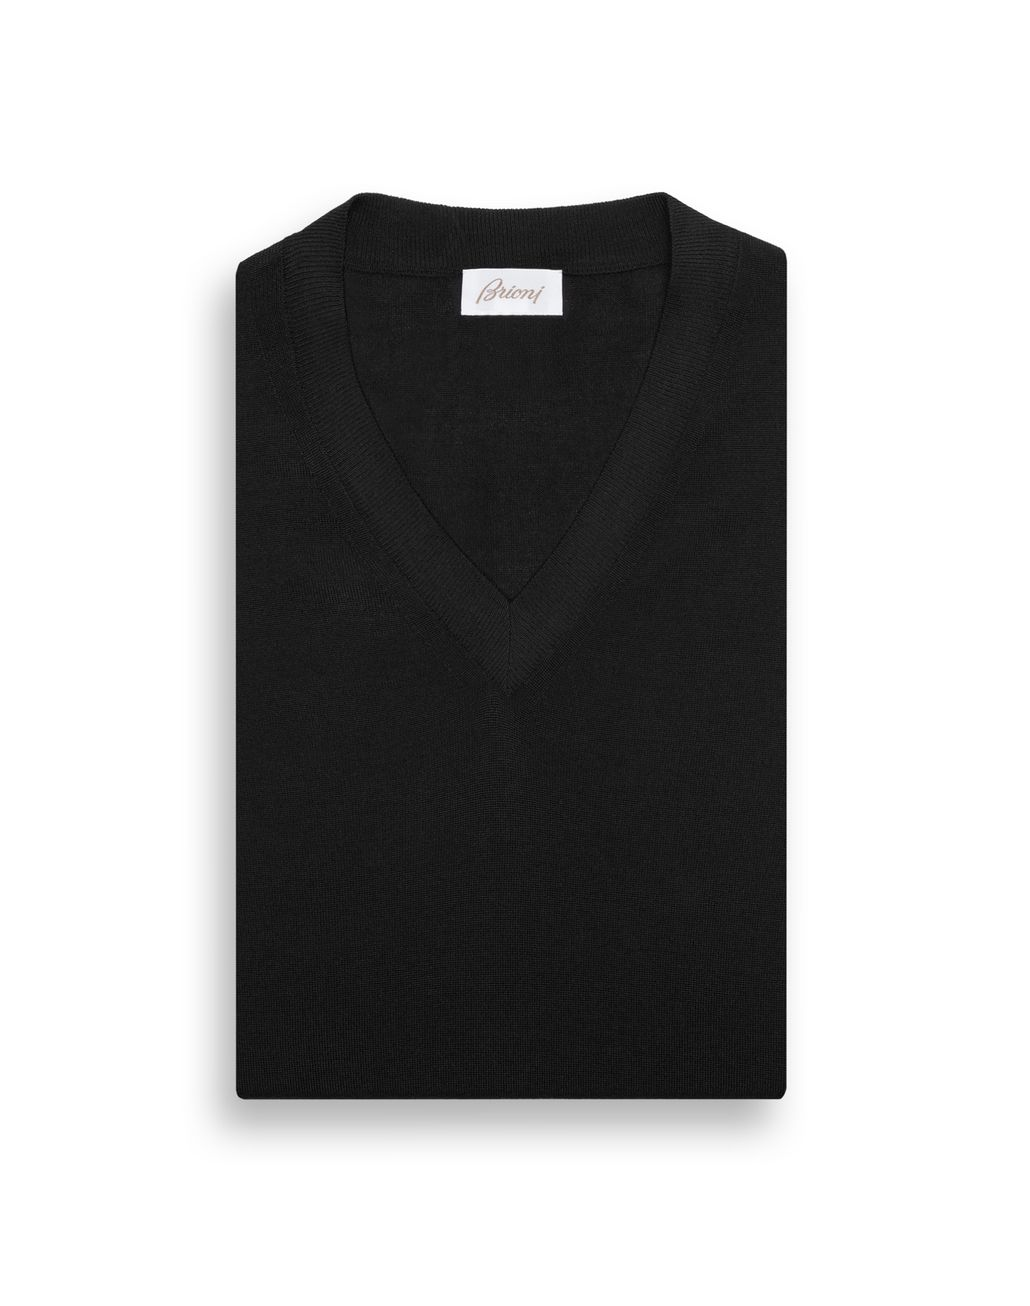 BRIONI 'Essential' Black V-Neck Sweater Knitwear Man e